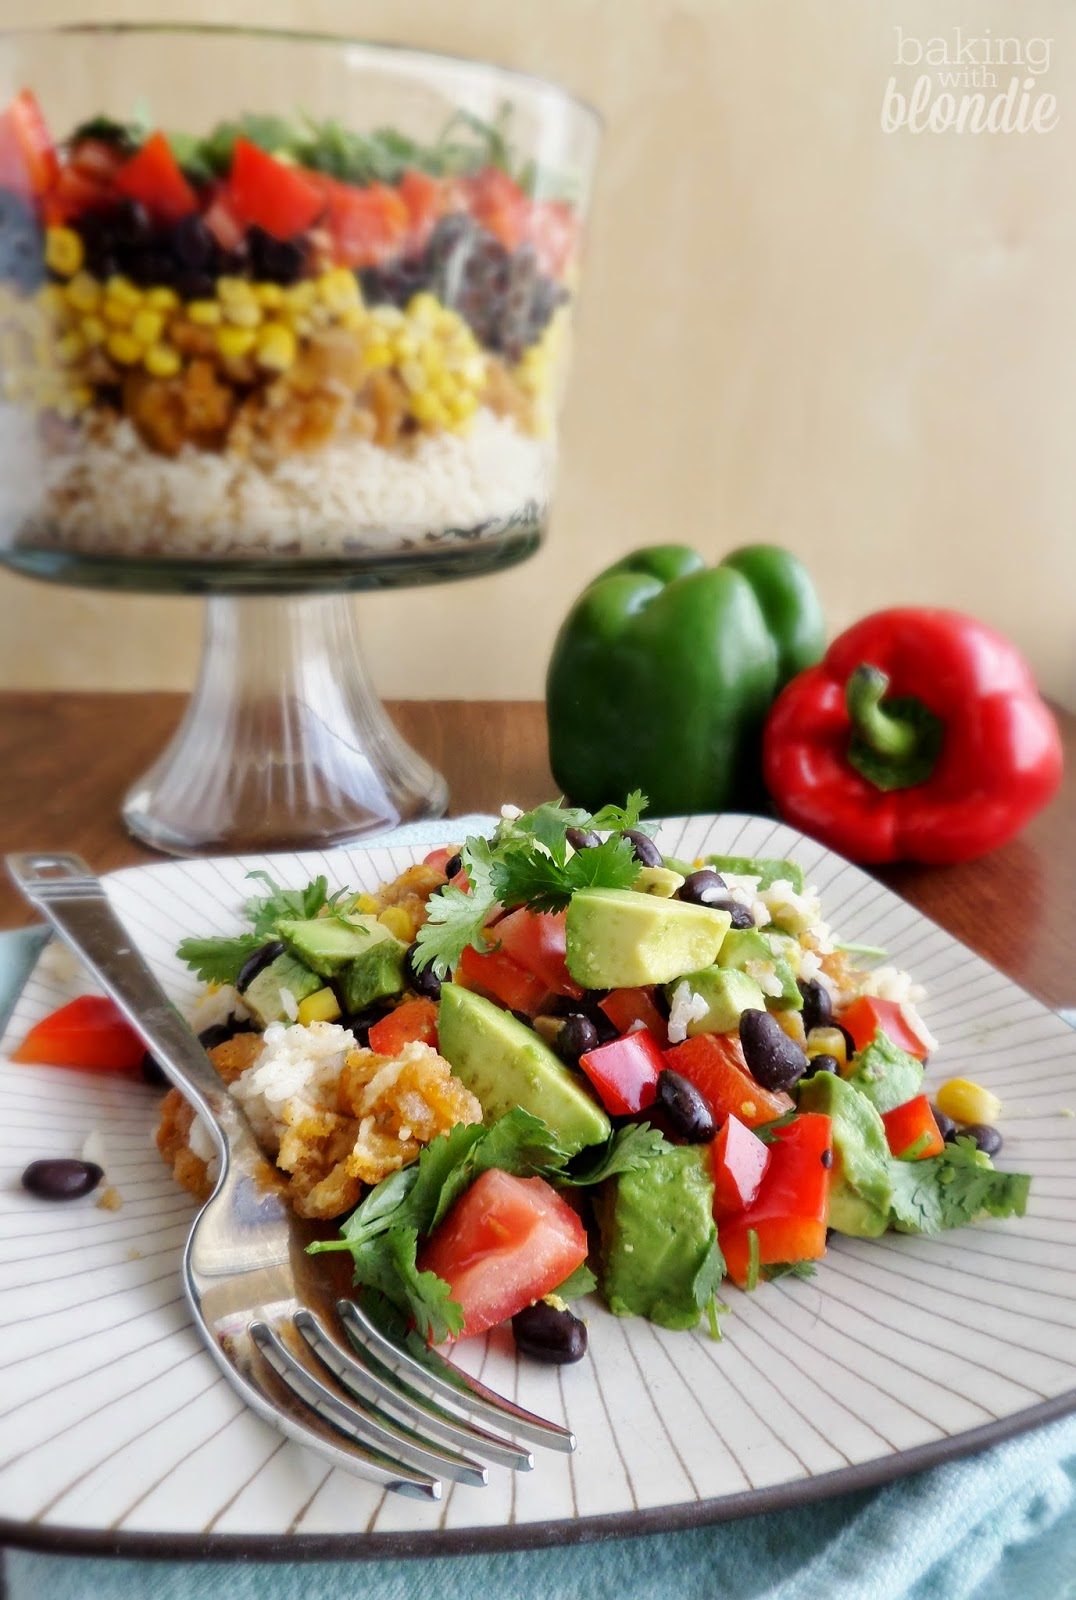 Layered Southwestern Rice Salad